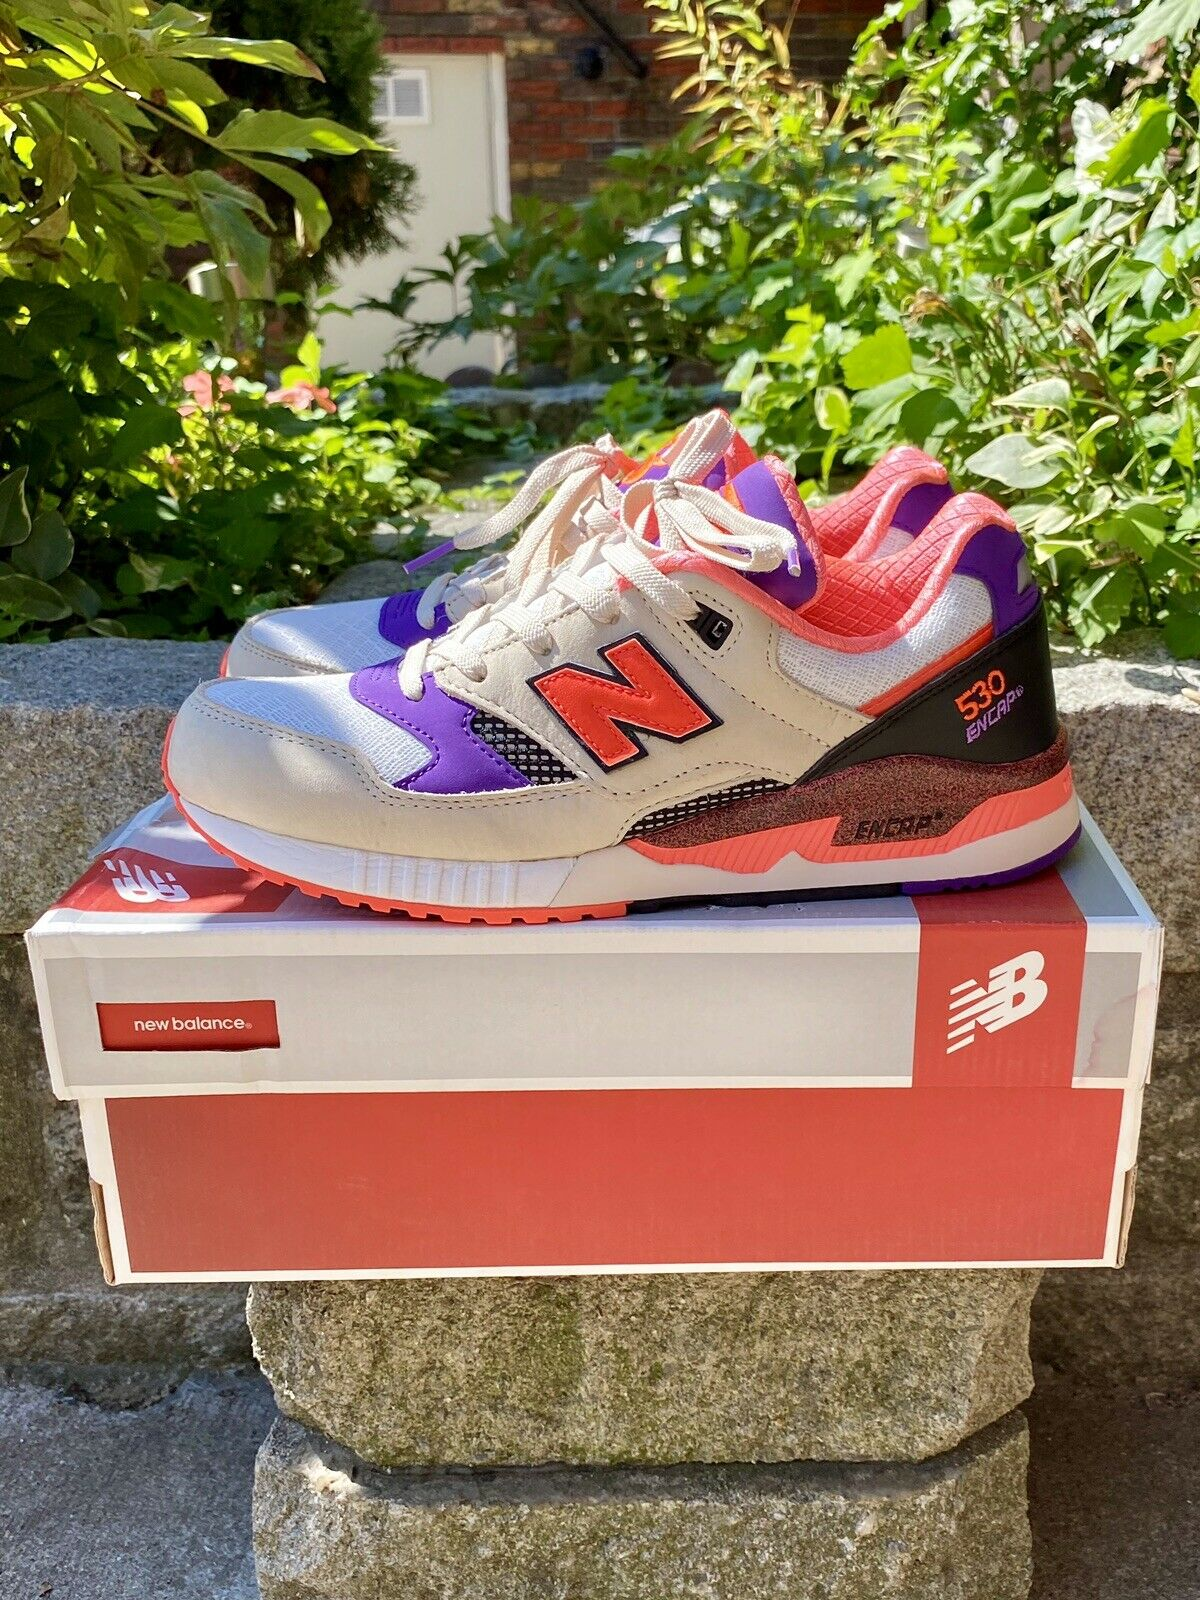 Size 9 - New Balance M530 x West NYC Project 530 for sale online ...